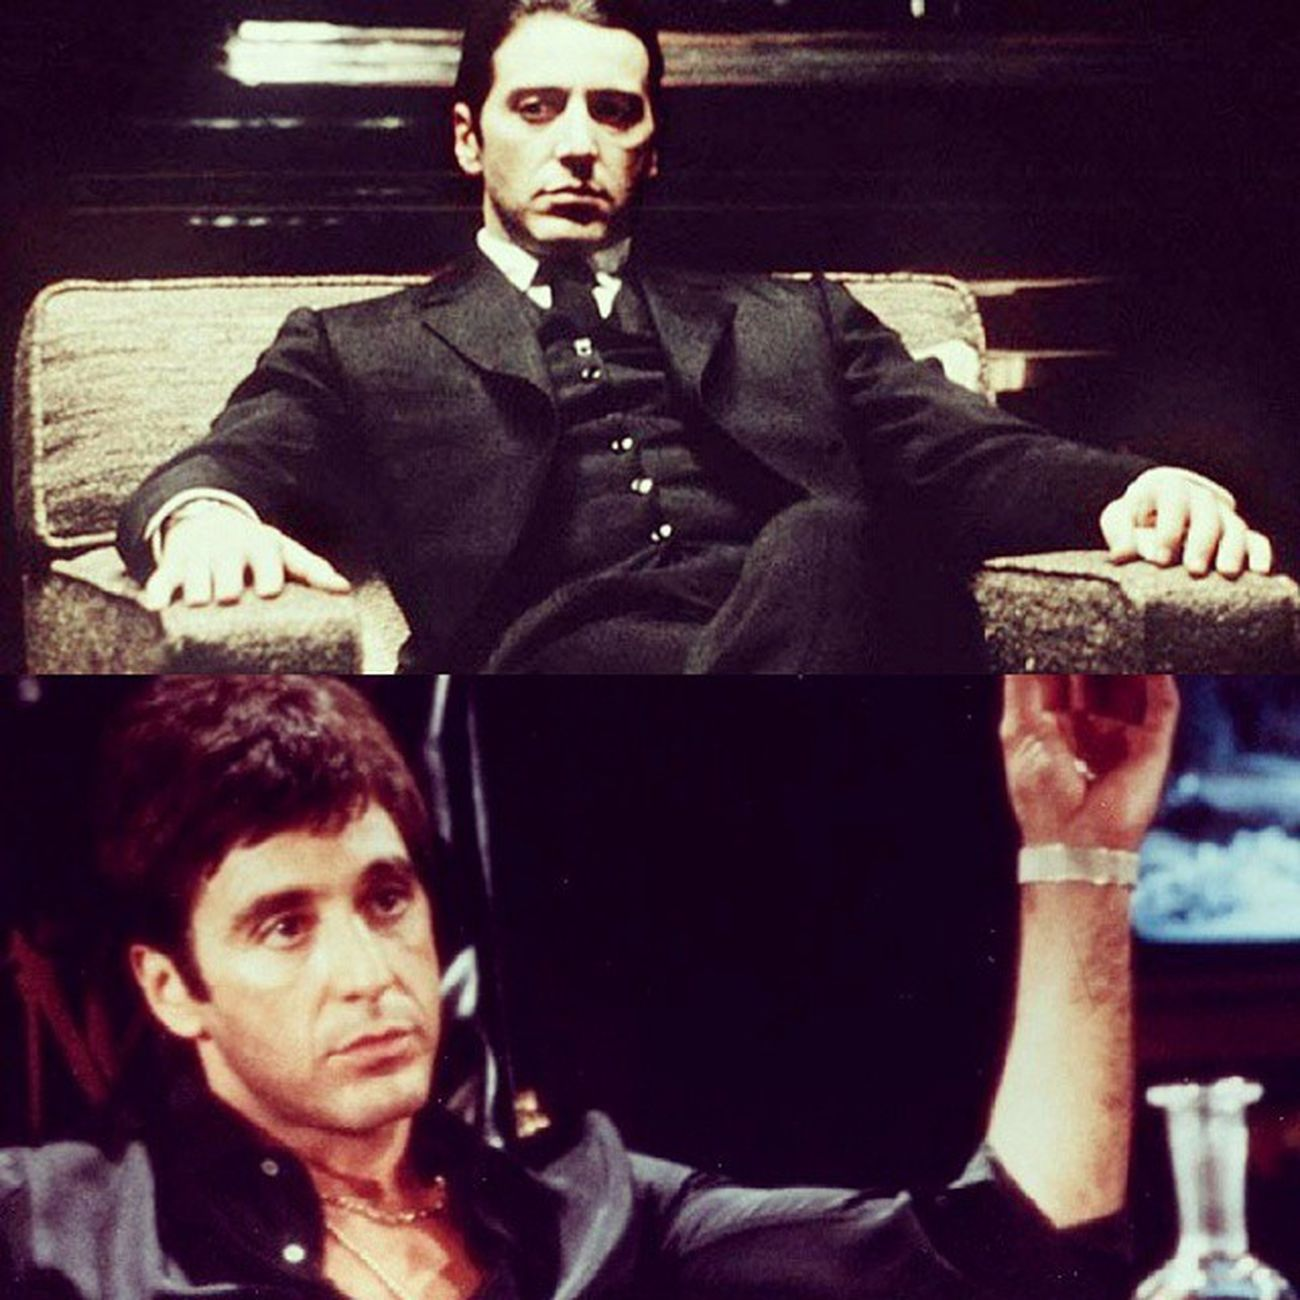 Heard the word, 'Mafia'? Then, your mind should imagine Al Pacino. <3 This Italian-American can characterize the same roles with contrast characters with added extravagance. xD Start Hollywood Movielove Alpacino Livinglegend Actingskills Blackattire Bestactorborntilldate Gangsterflicks Godfathertrilogy Dialogues Scarface Michaelcorleone TonyMontana Incomparable Inspiration Mafia  Stylish Italianaccent Contrastcharacter Cantstopthesehashtags Pacinofanforever Stop